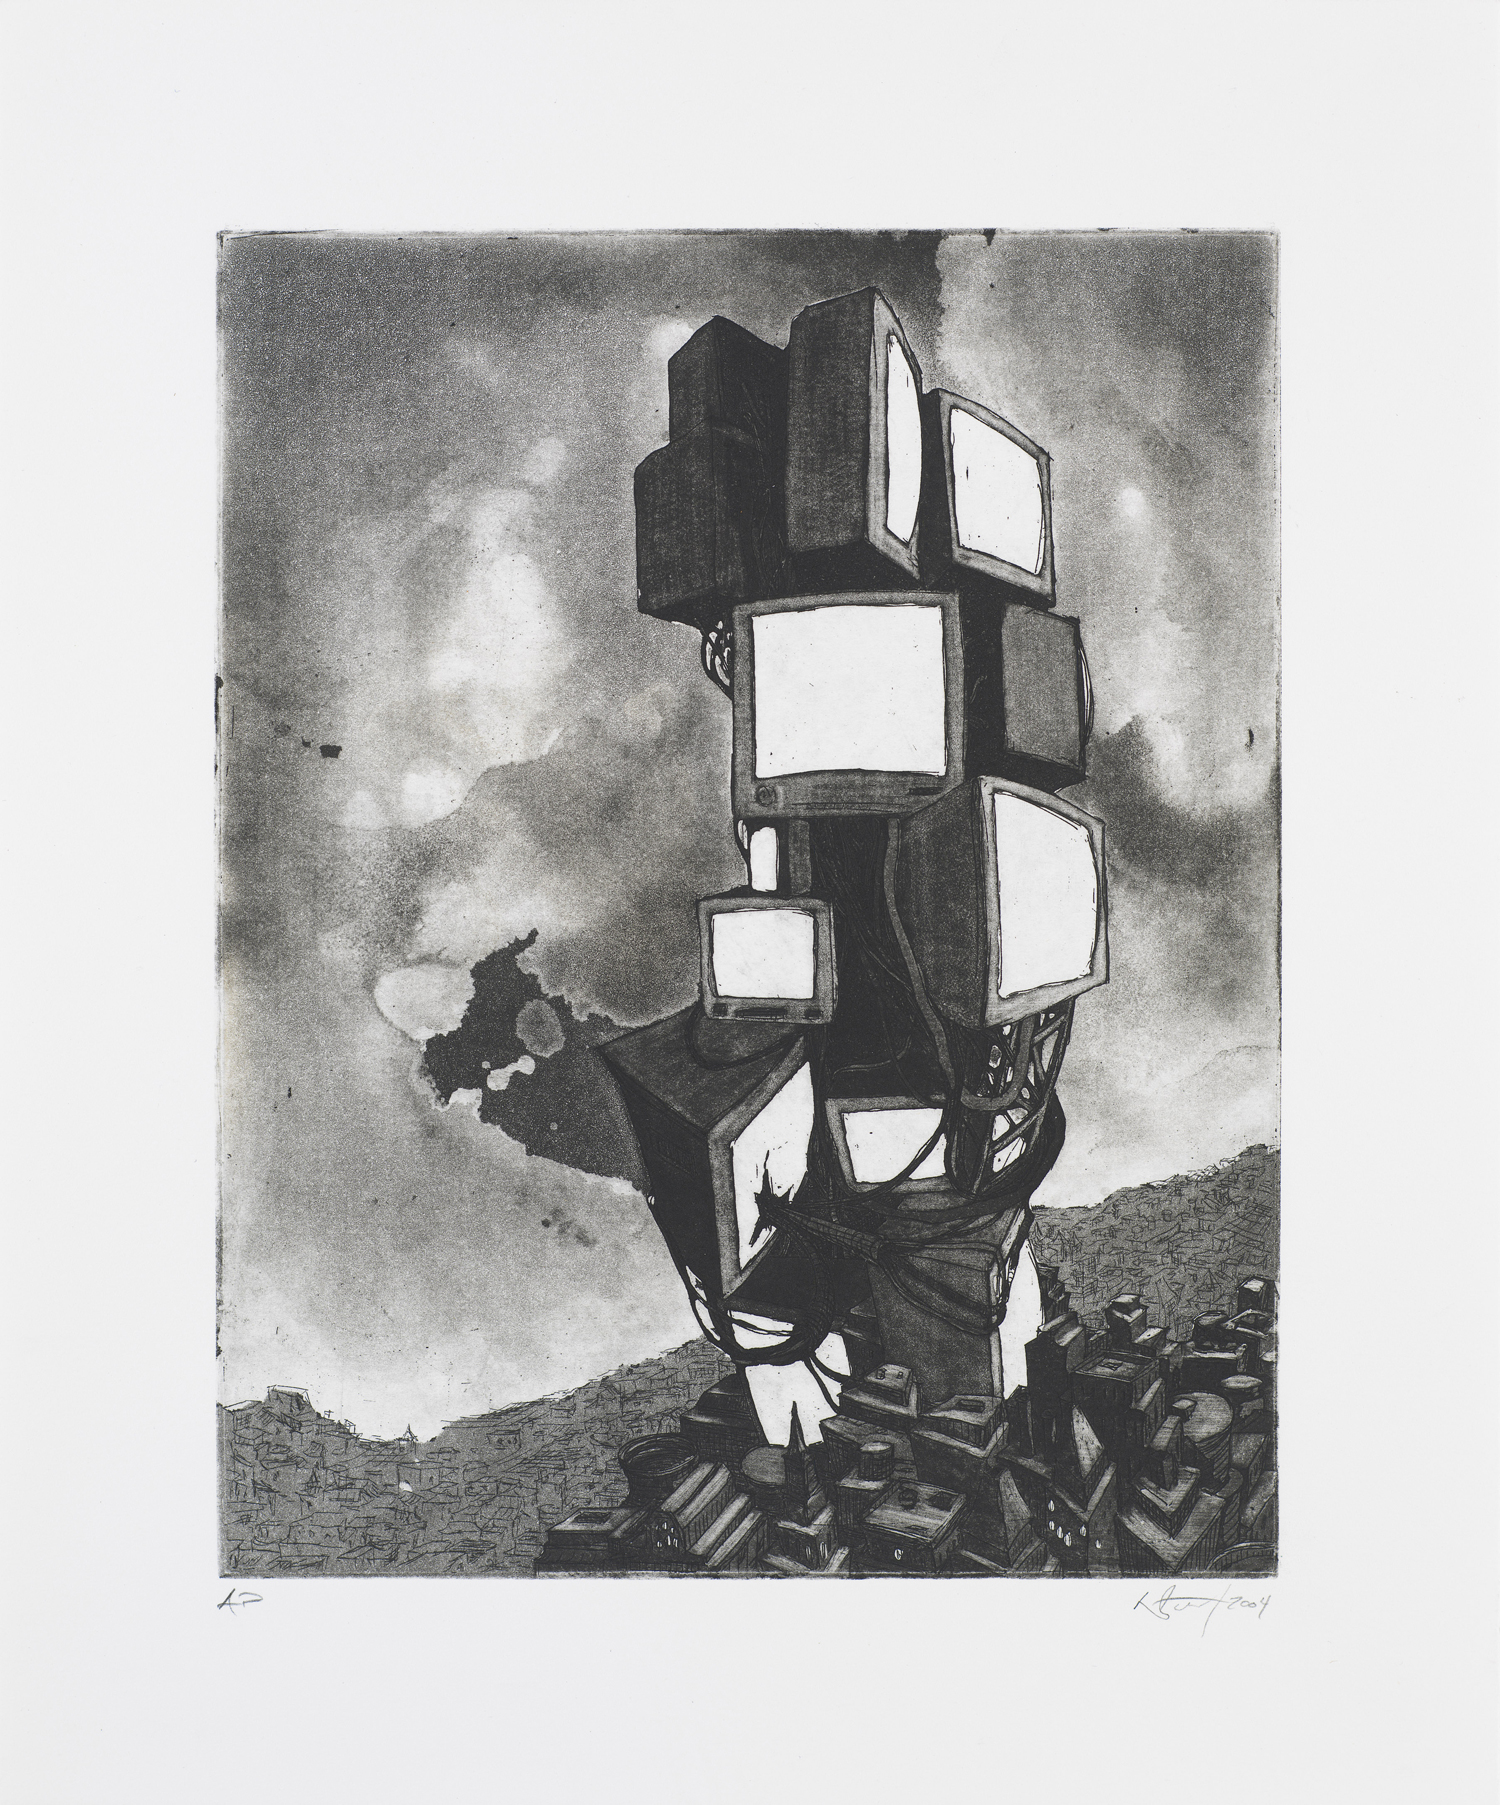 """Monument III (TV)  2004; Intaglio on paper; 14.5"""" x 12""""; Self published; Edition of 12"""